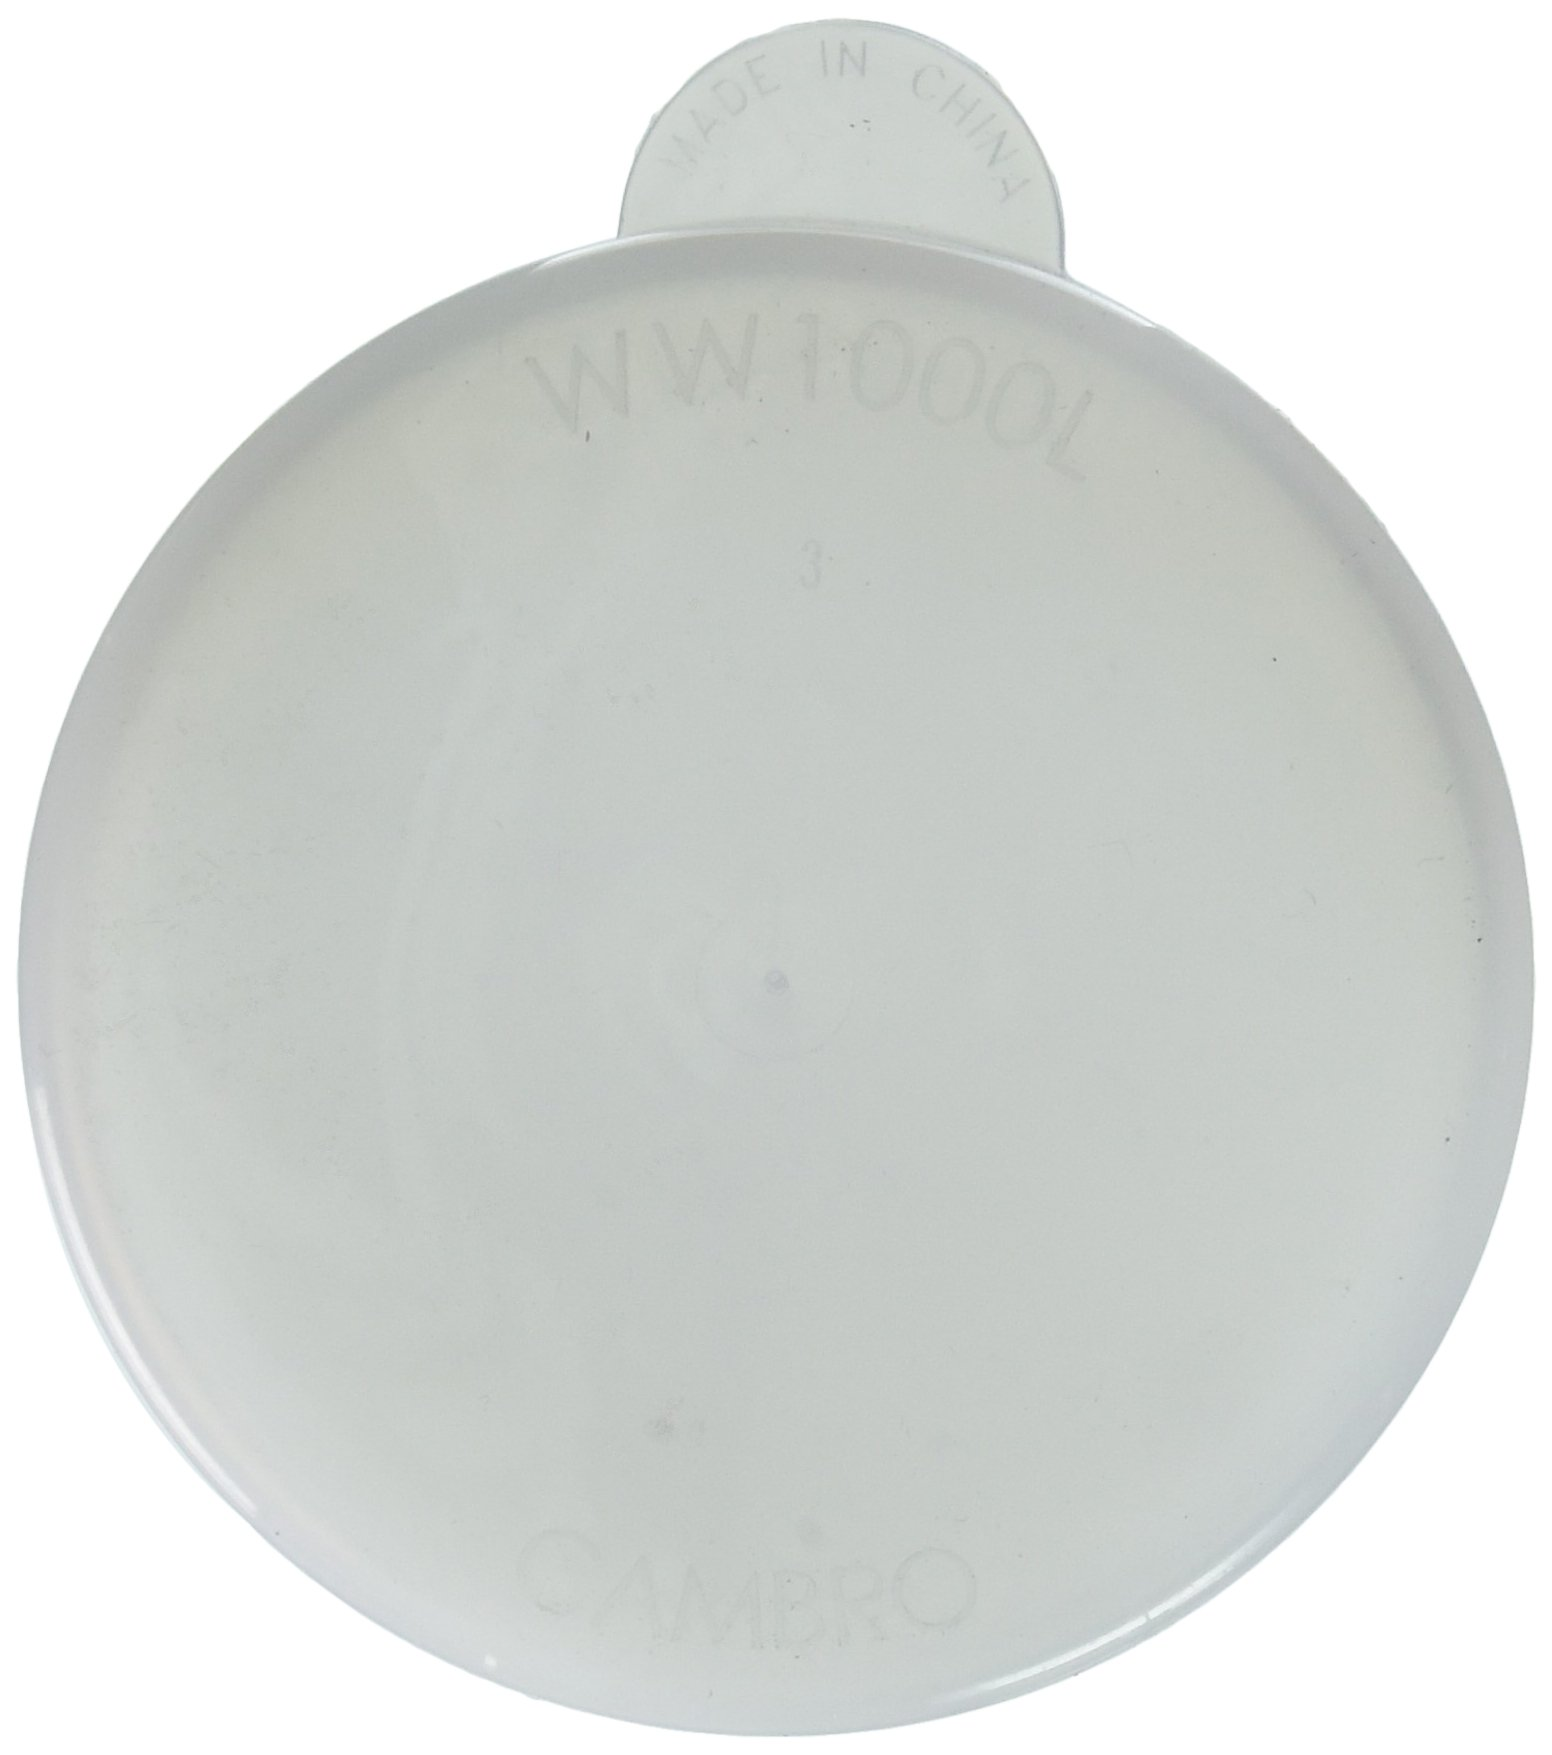 Cambro Replacement Lid for 1 1/2 Liter, 1 Liter and 1/2 Liter Camliter White (WW1000L148) Category: Food Storage Boxes